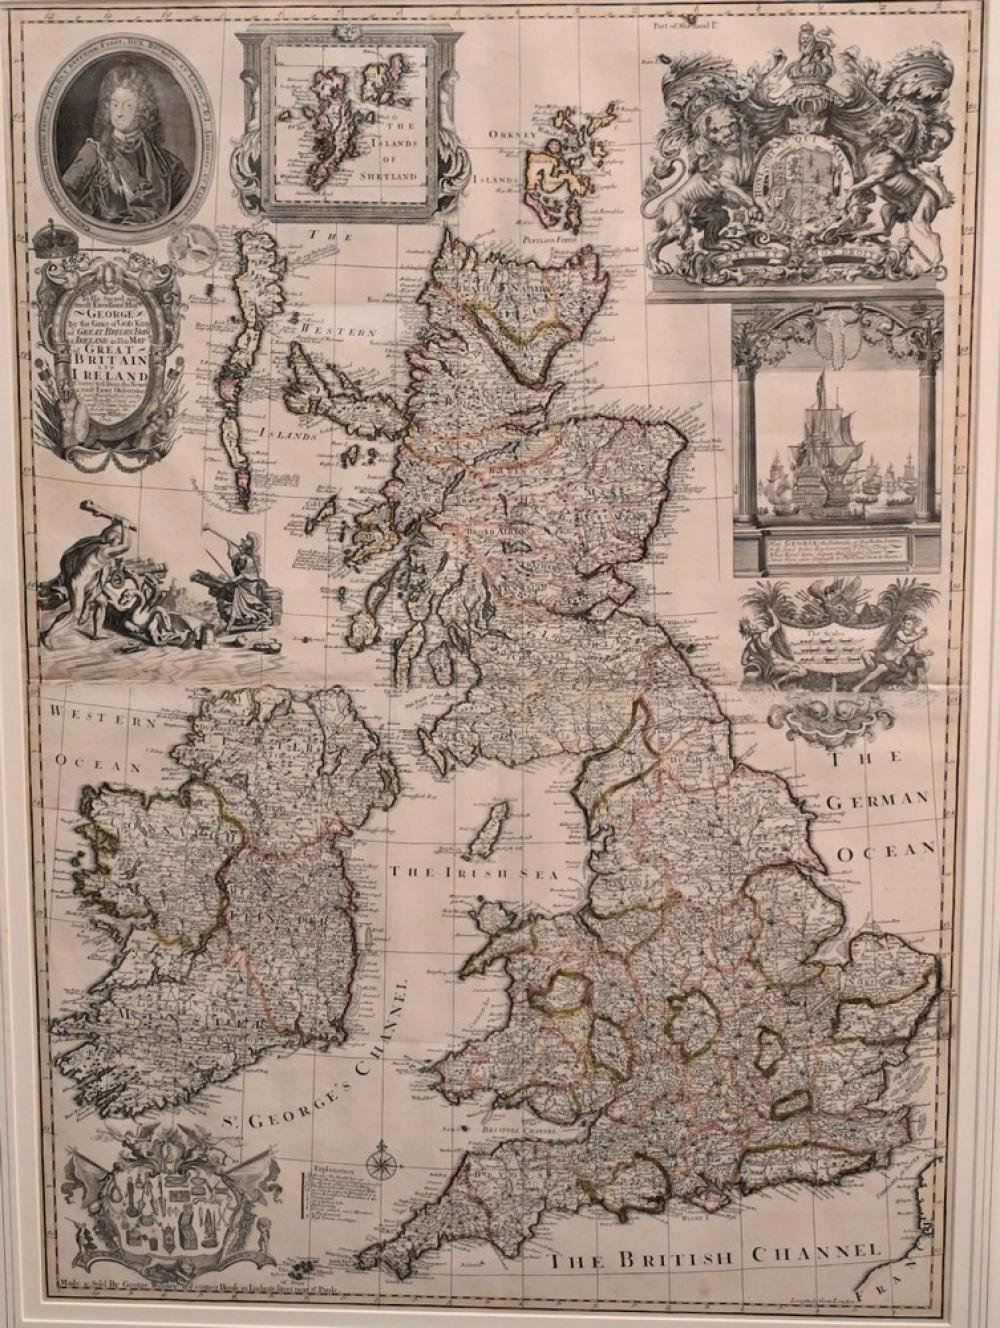 George WilldeyBritish, active 1707 - 1737Great Britain and Ireland1715engraving with hand coloring on papersight size 38 x 26 1...